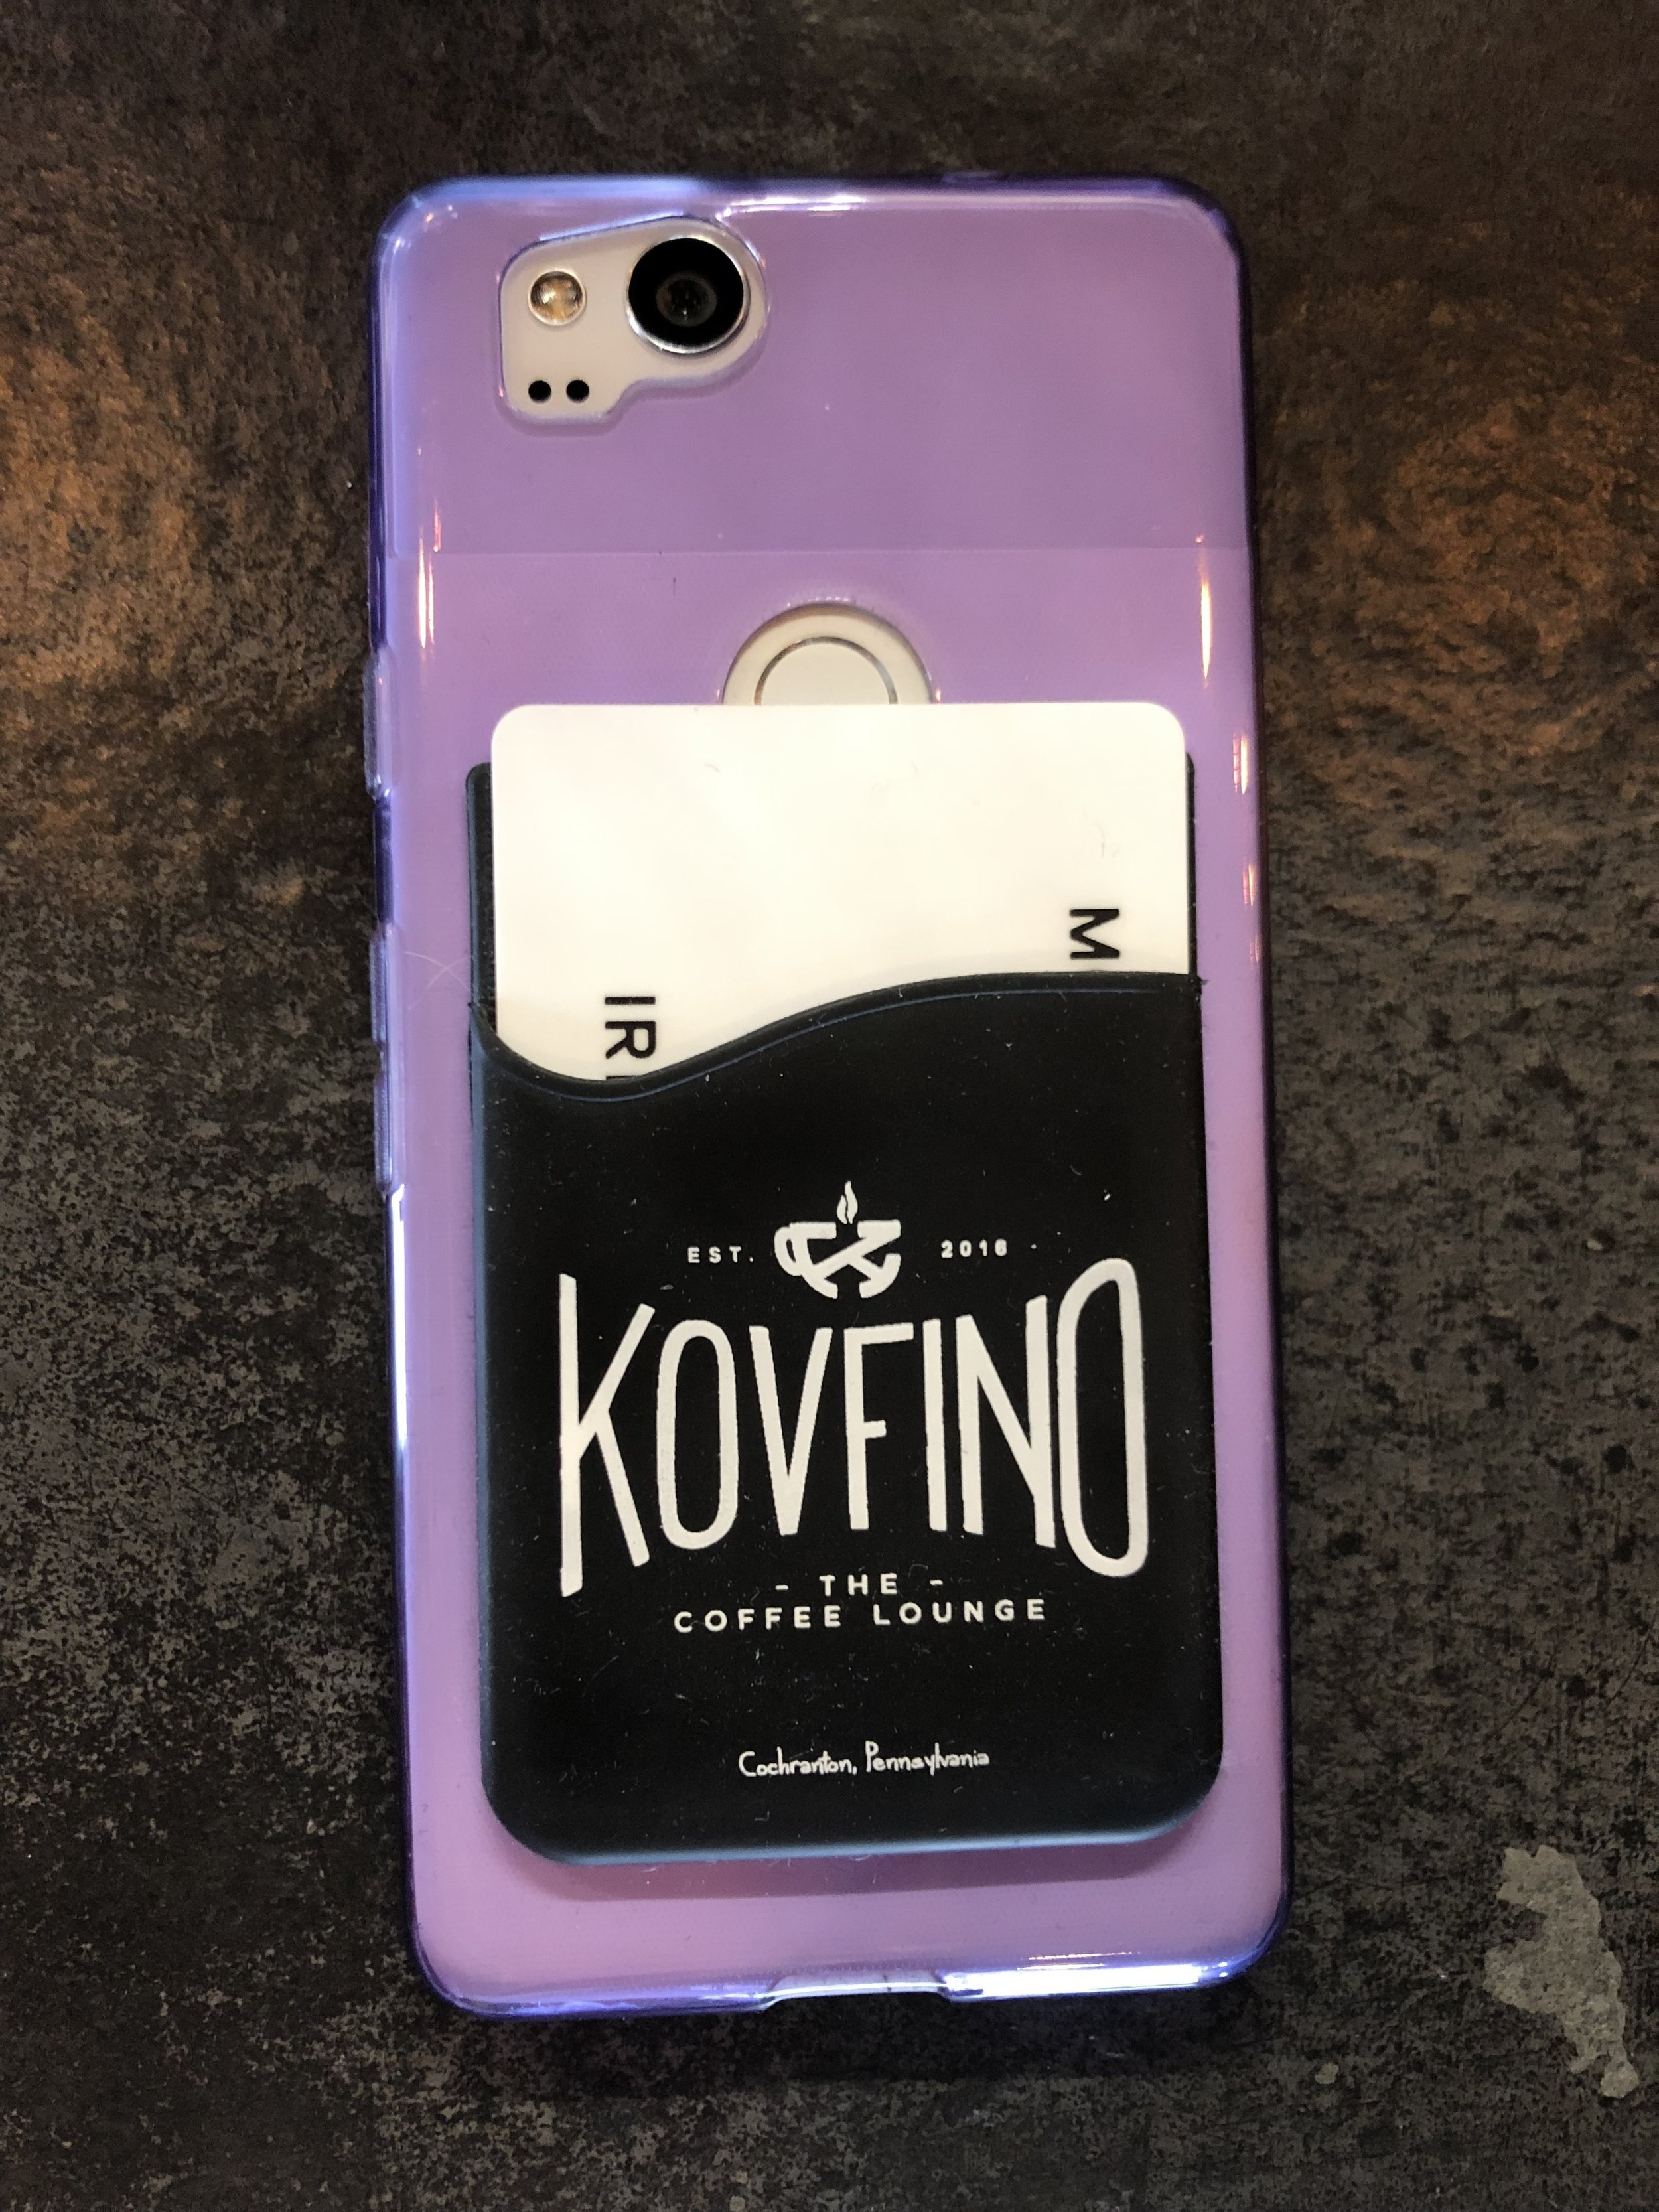 What an easy way to carry cards with your phone. This is a great buy at only $4.00